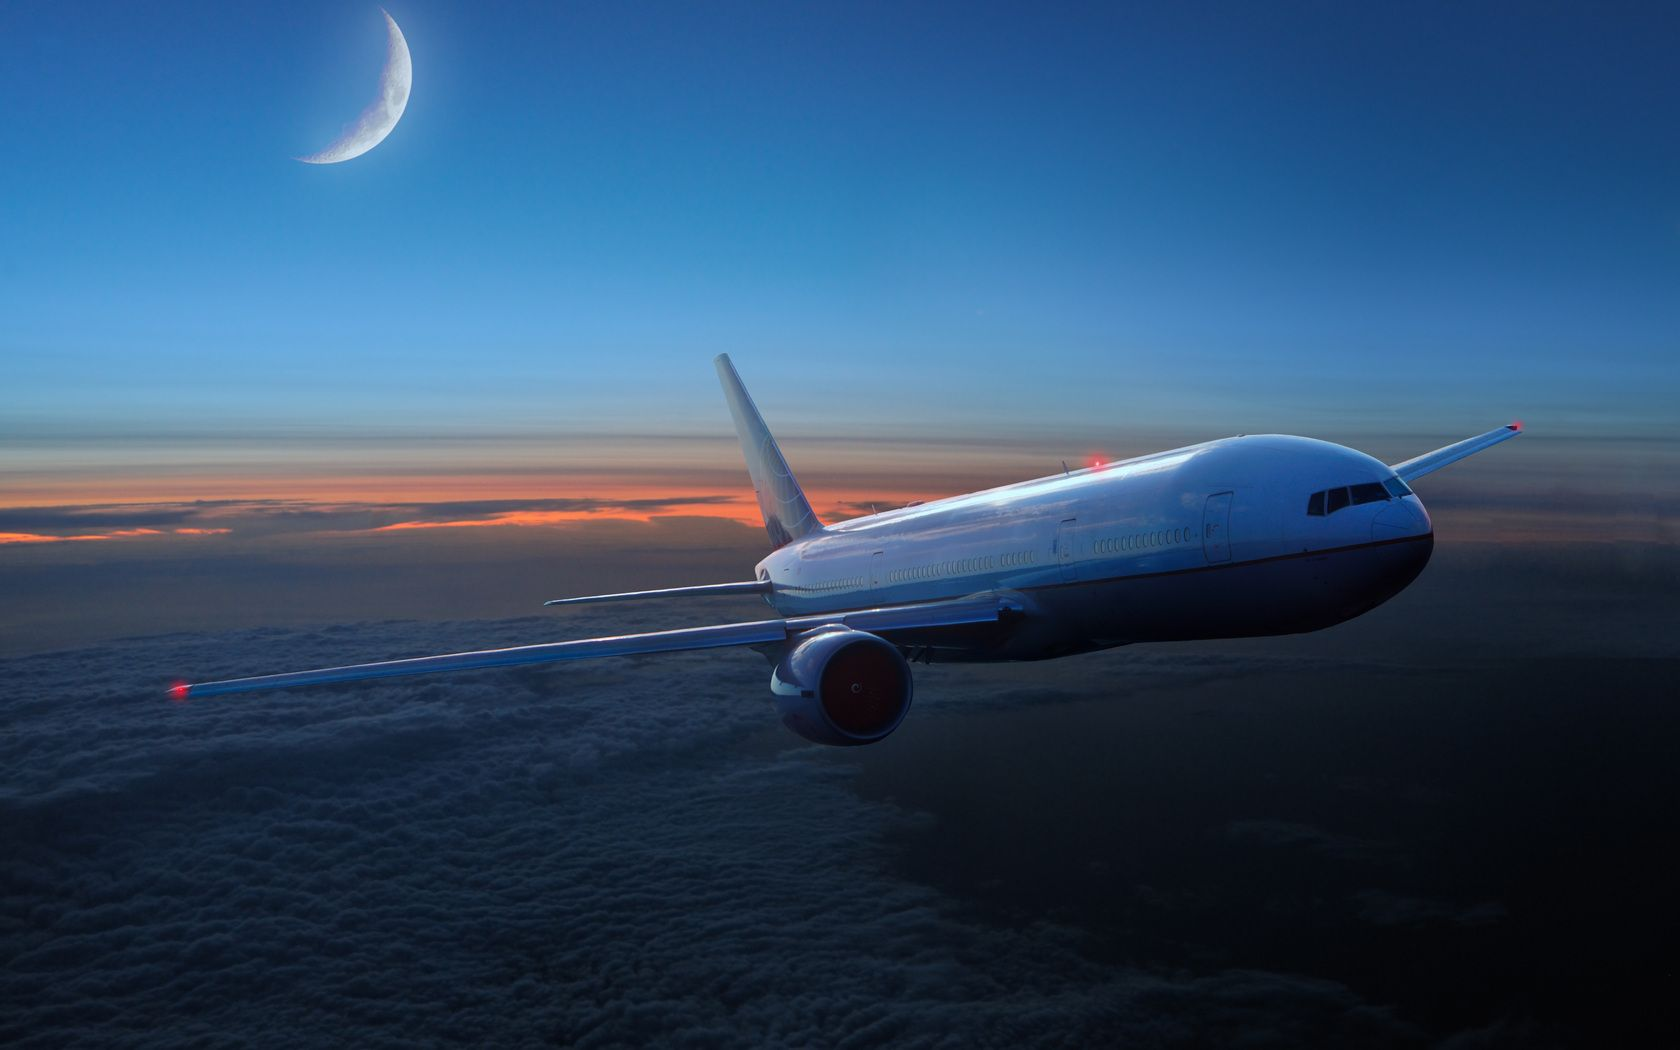 Wallpaper For Iphone Airplane In The Sky